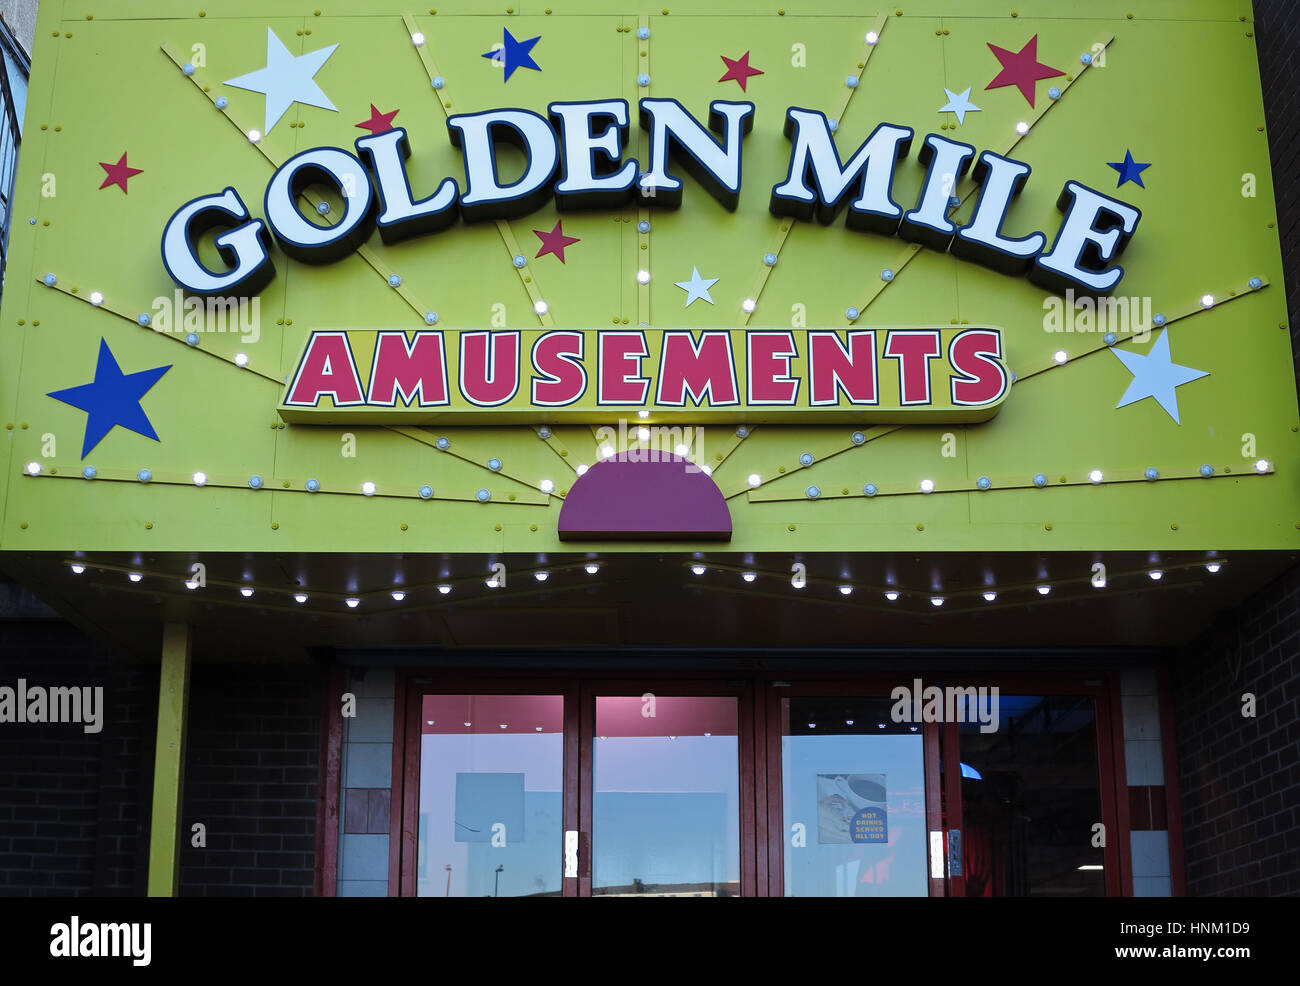 The Golden Mile - Stock Image